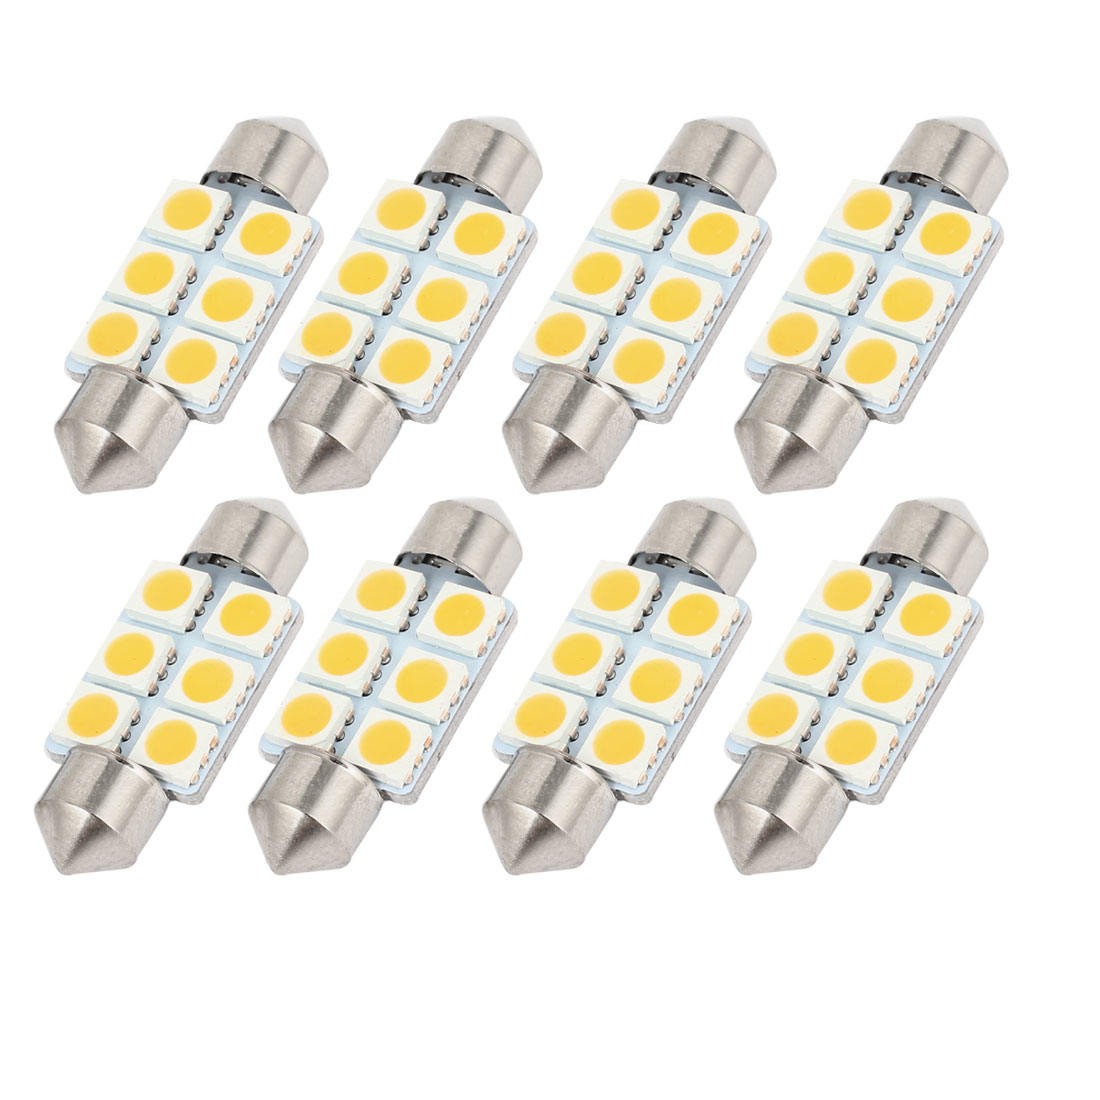 "8 Pcs 36mm 1.50"" 6-SMD 5050 Warm White LED Festoon Dome Light DE3423 Internal"